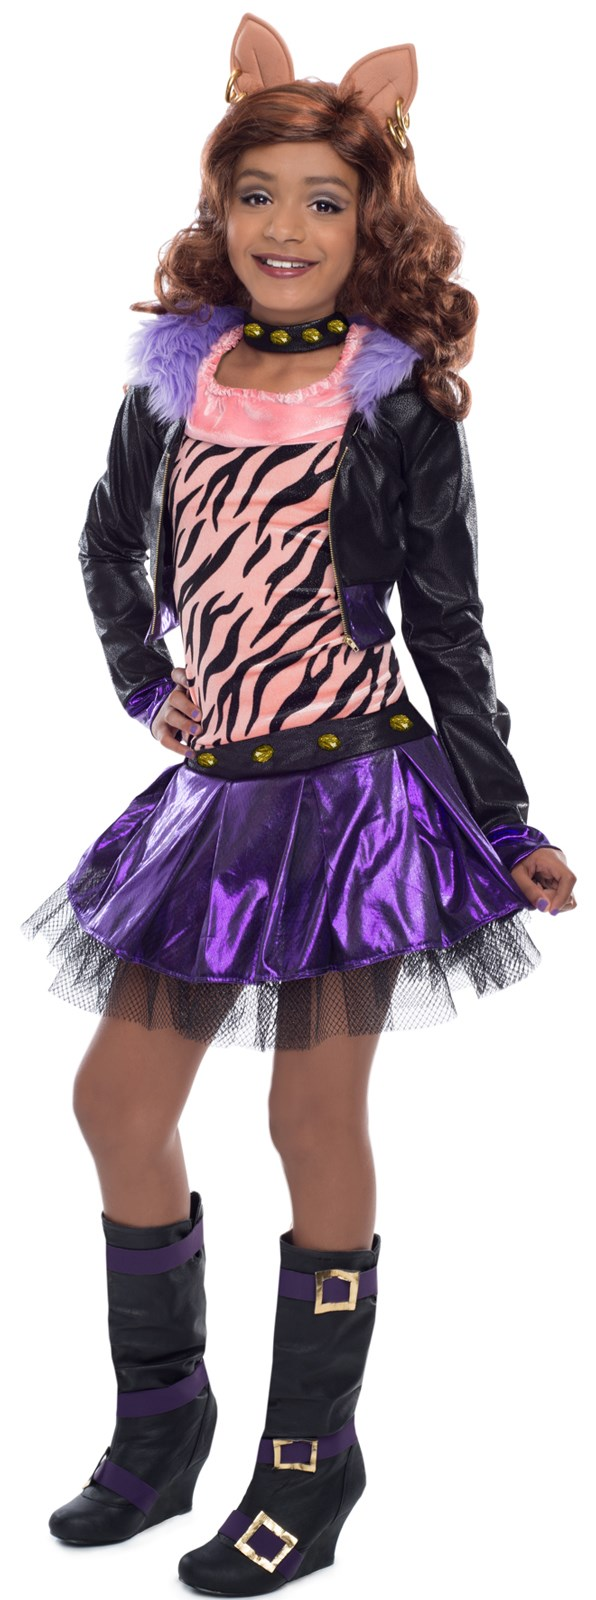 Deluxe Monster High Clawdeen Wolf Girls Costume Large (10)